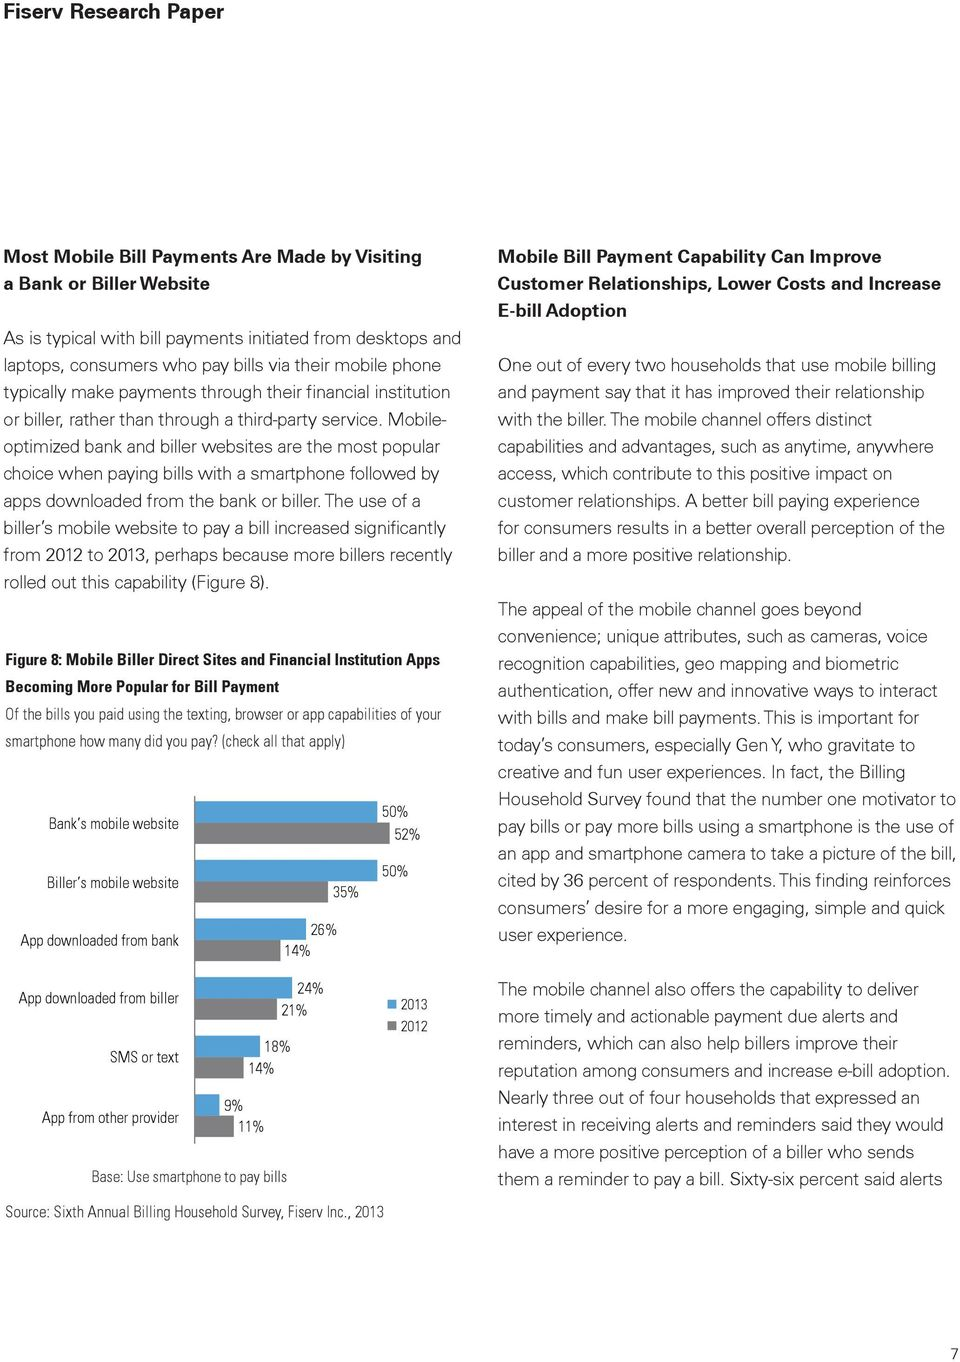 Mobileoptimized bank and biller websites are the most popular choice when paying bills with a smartphone followed by apps downloaded from the bank or biller.